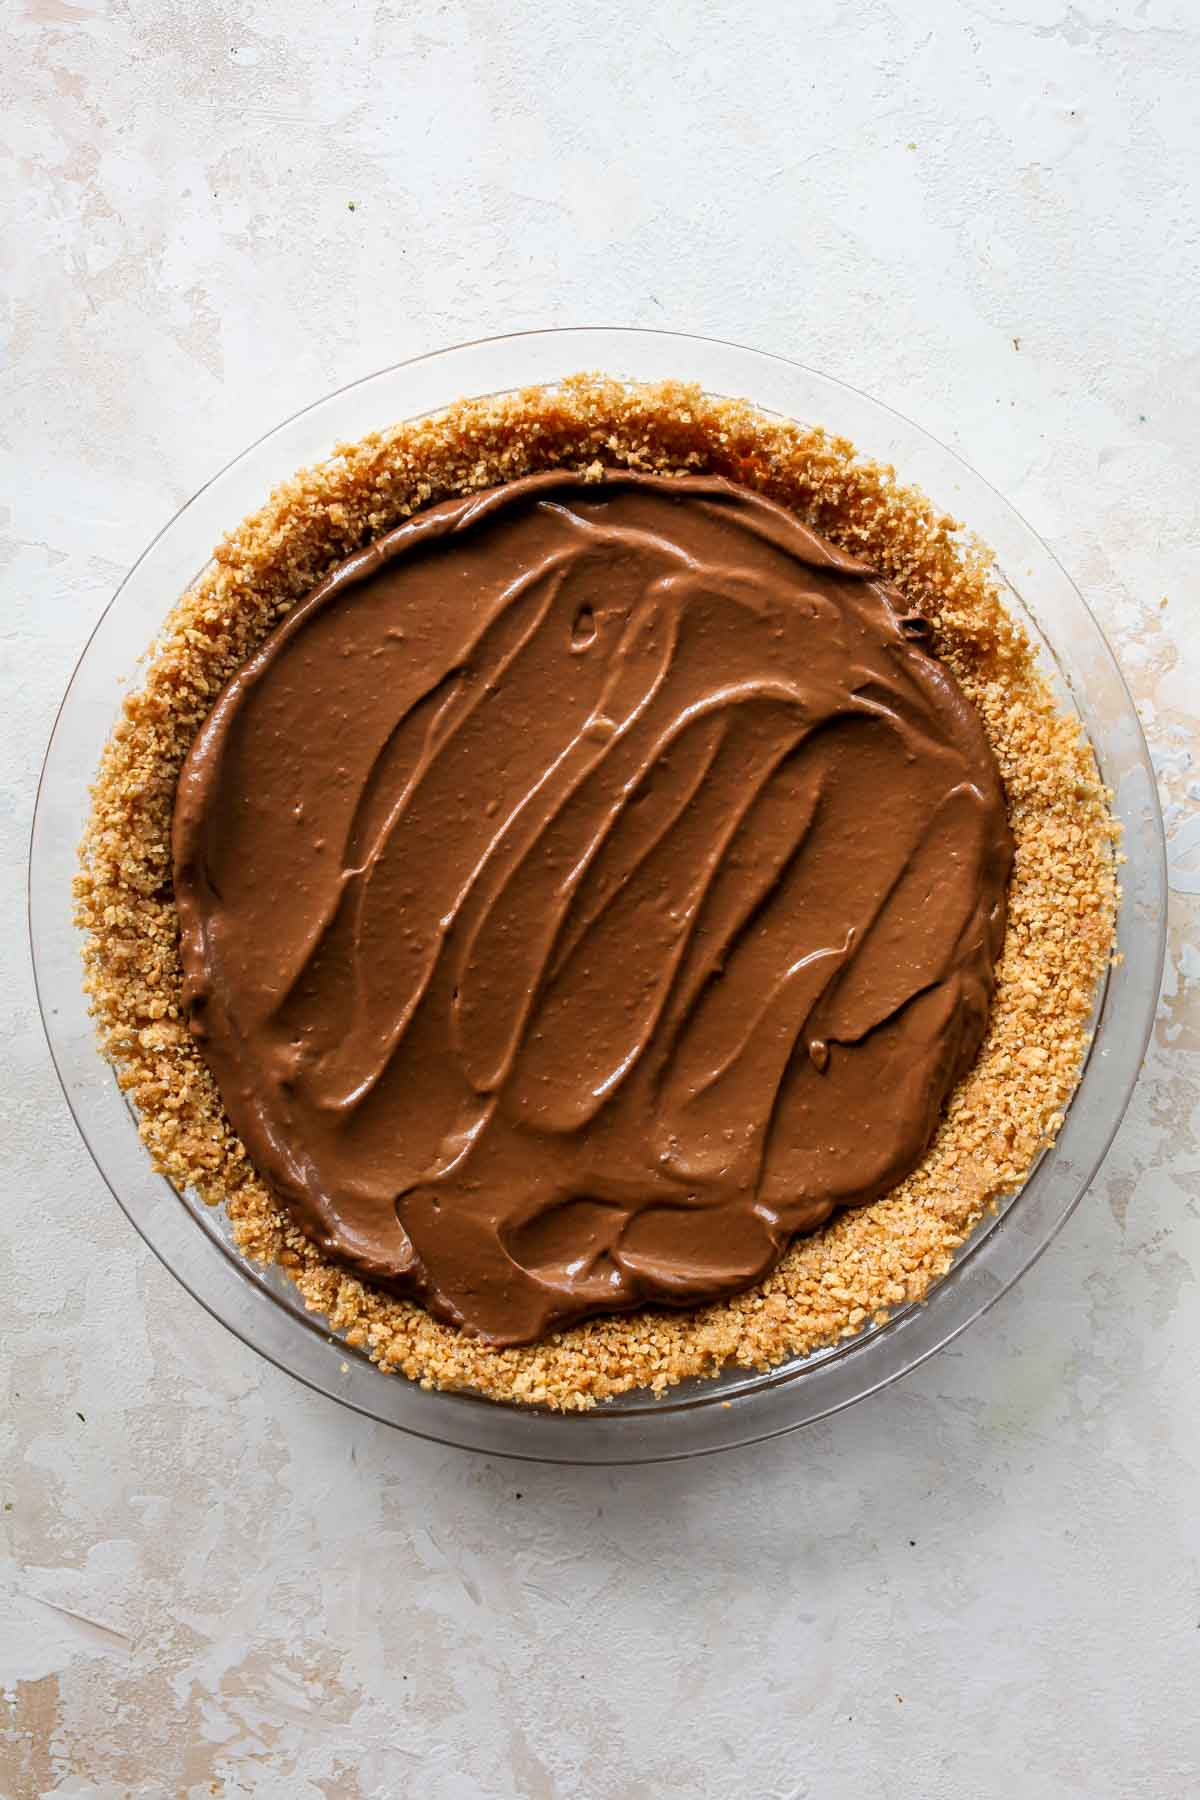 Chocolate pudding being spread in a pie crust